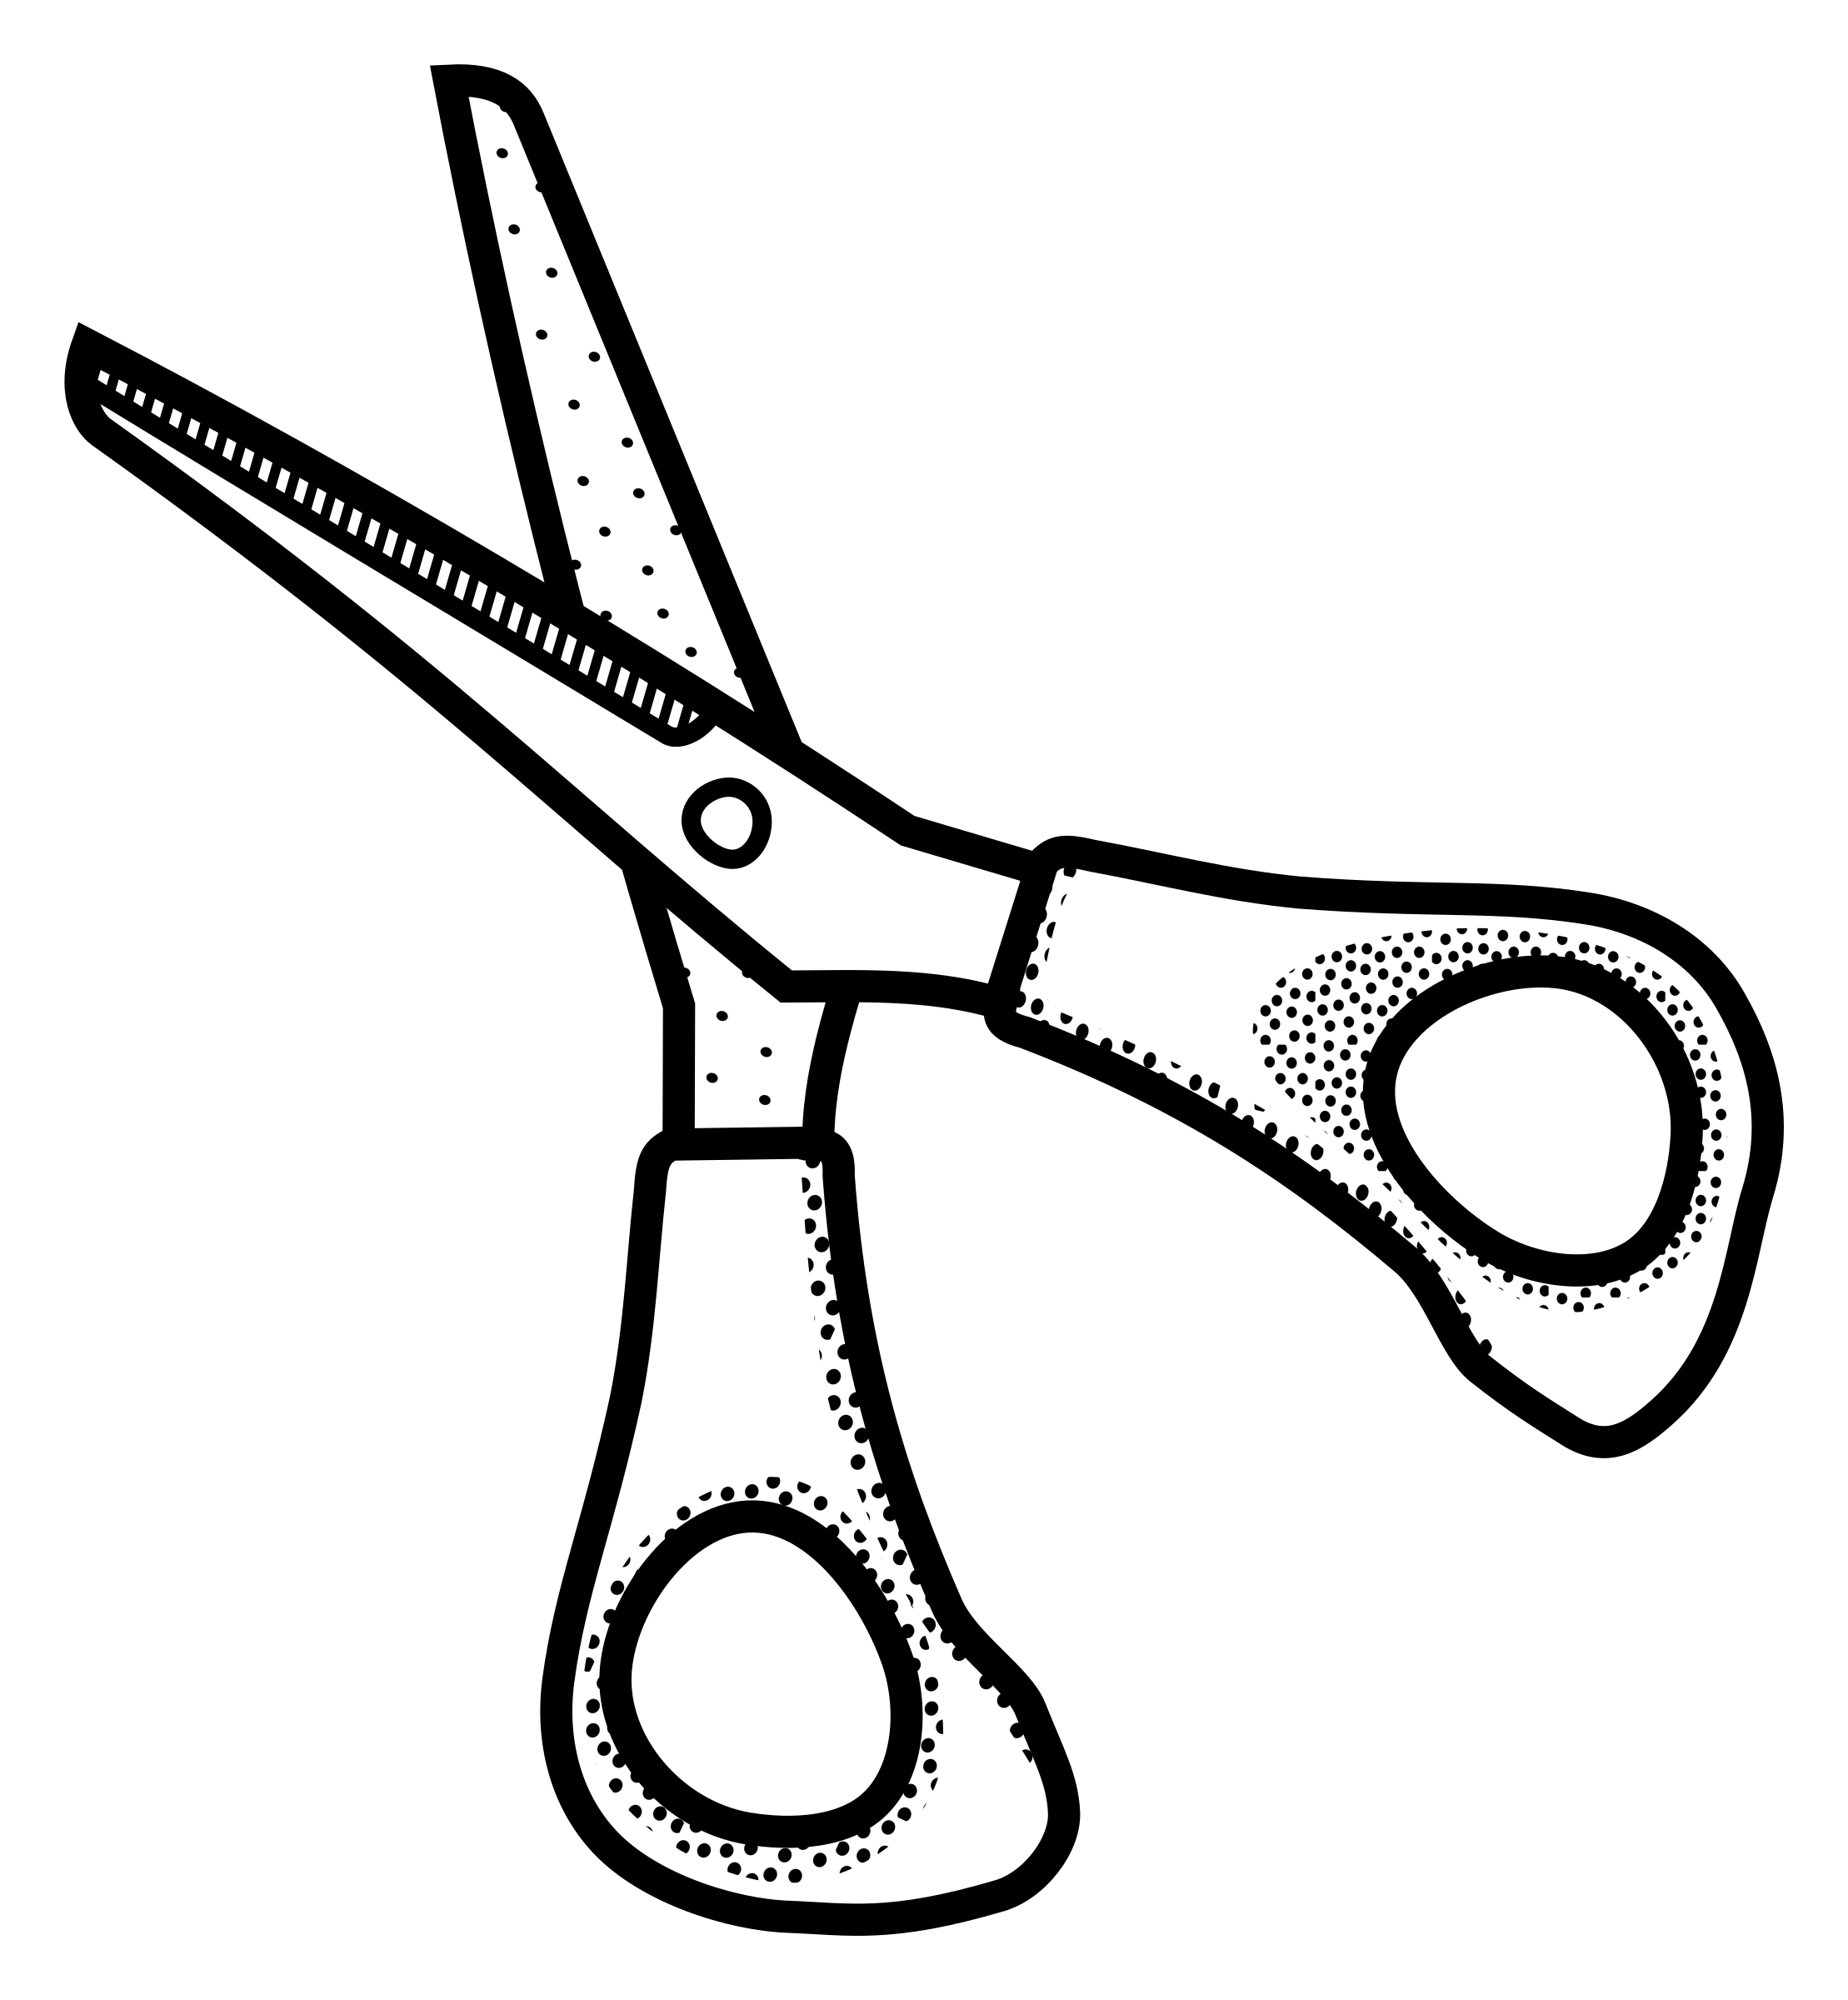 Shears drawing old fashioned. Collection of free cessor